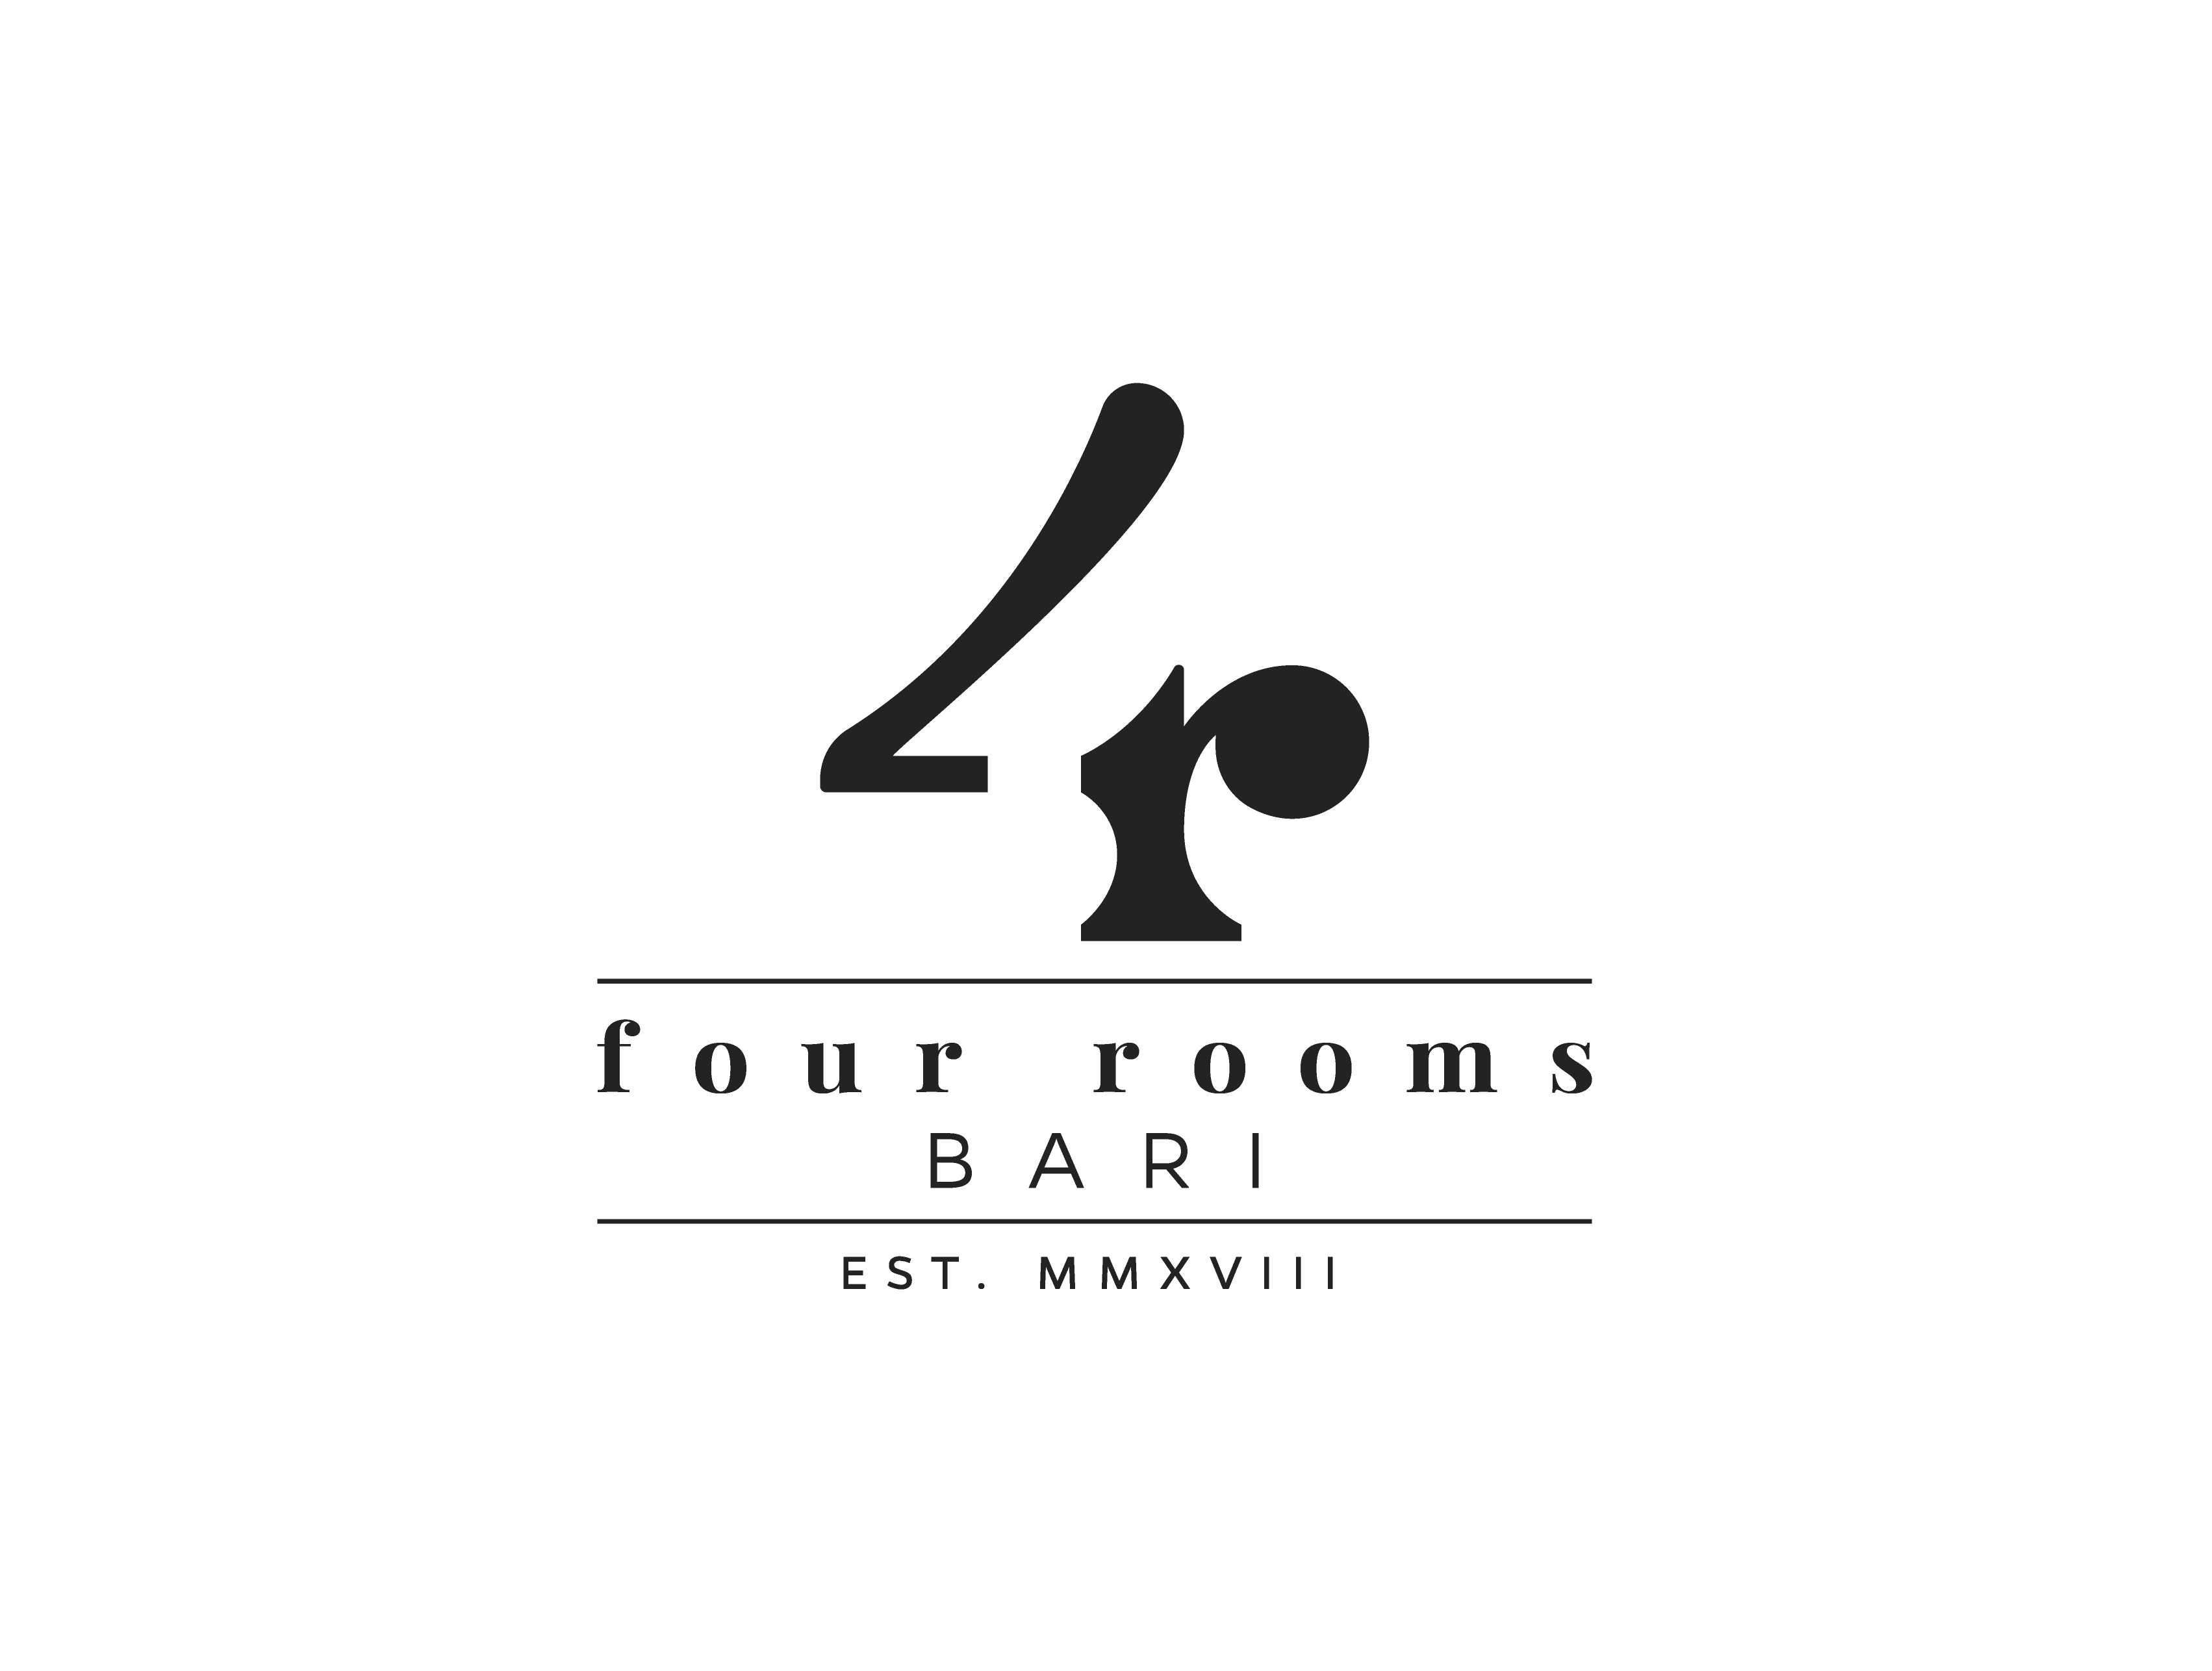 logo four rooms